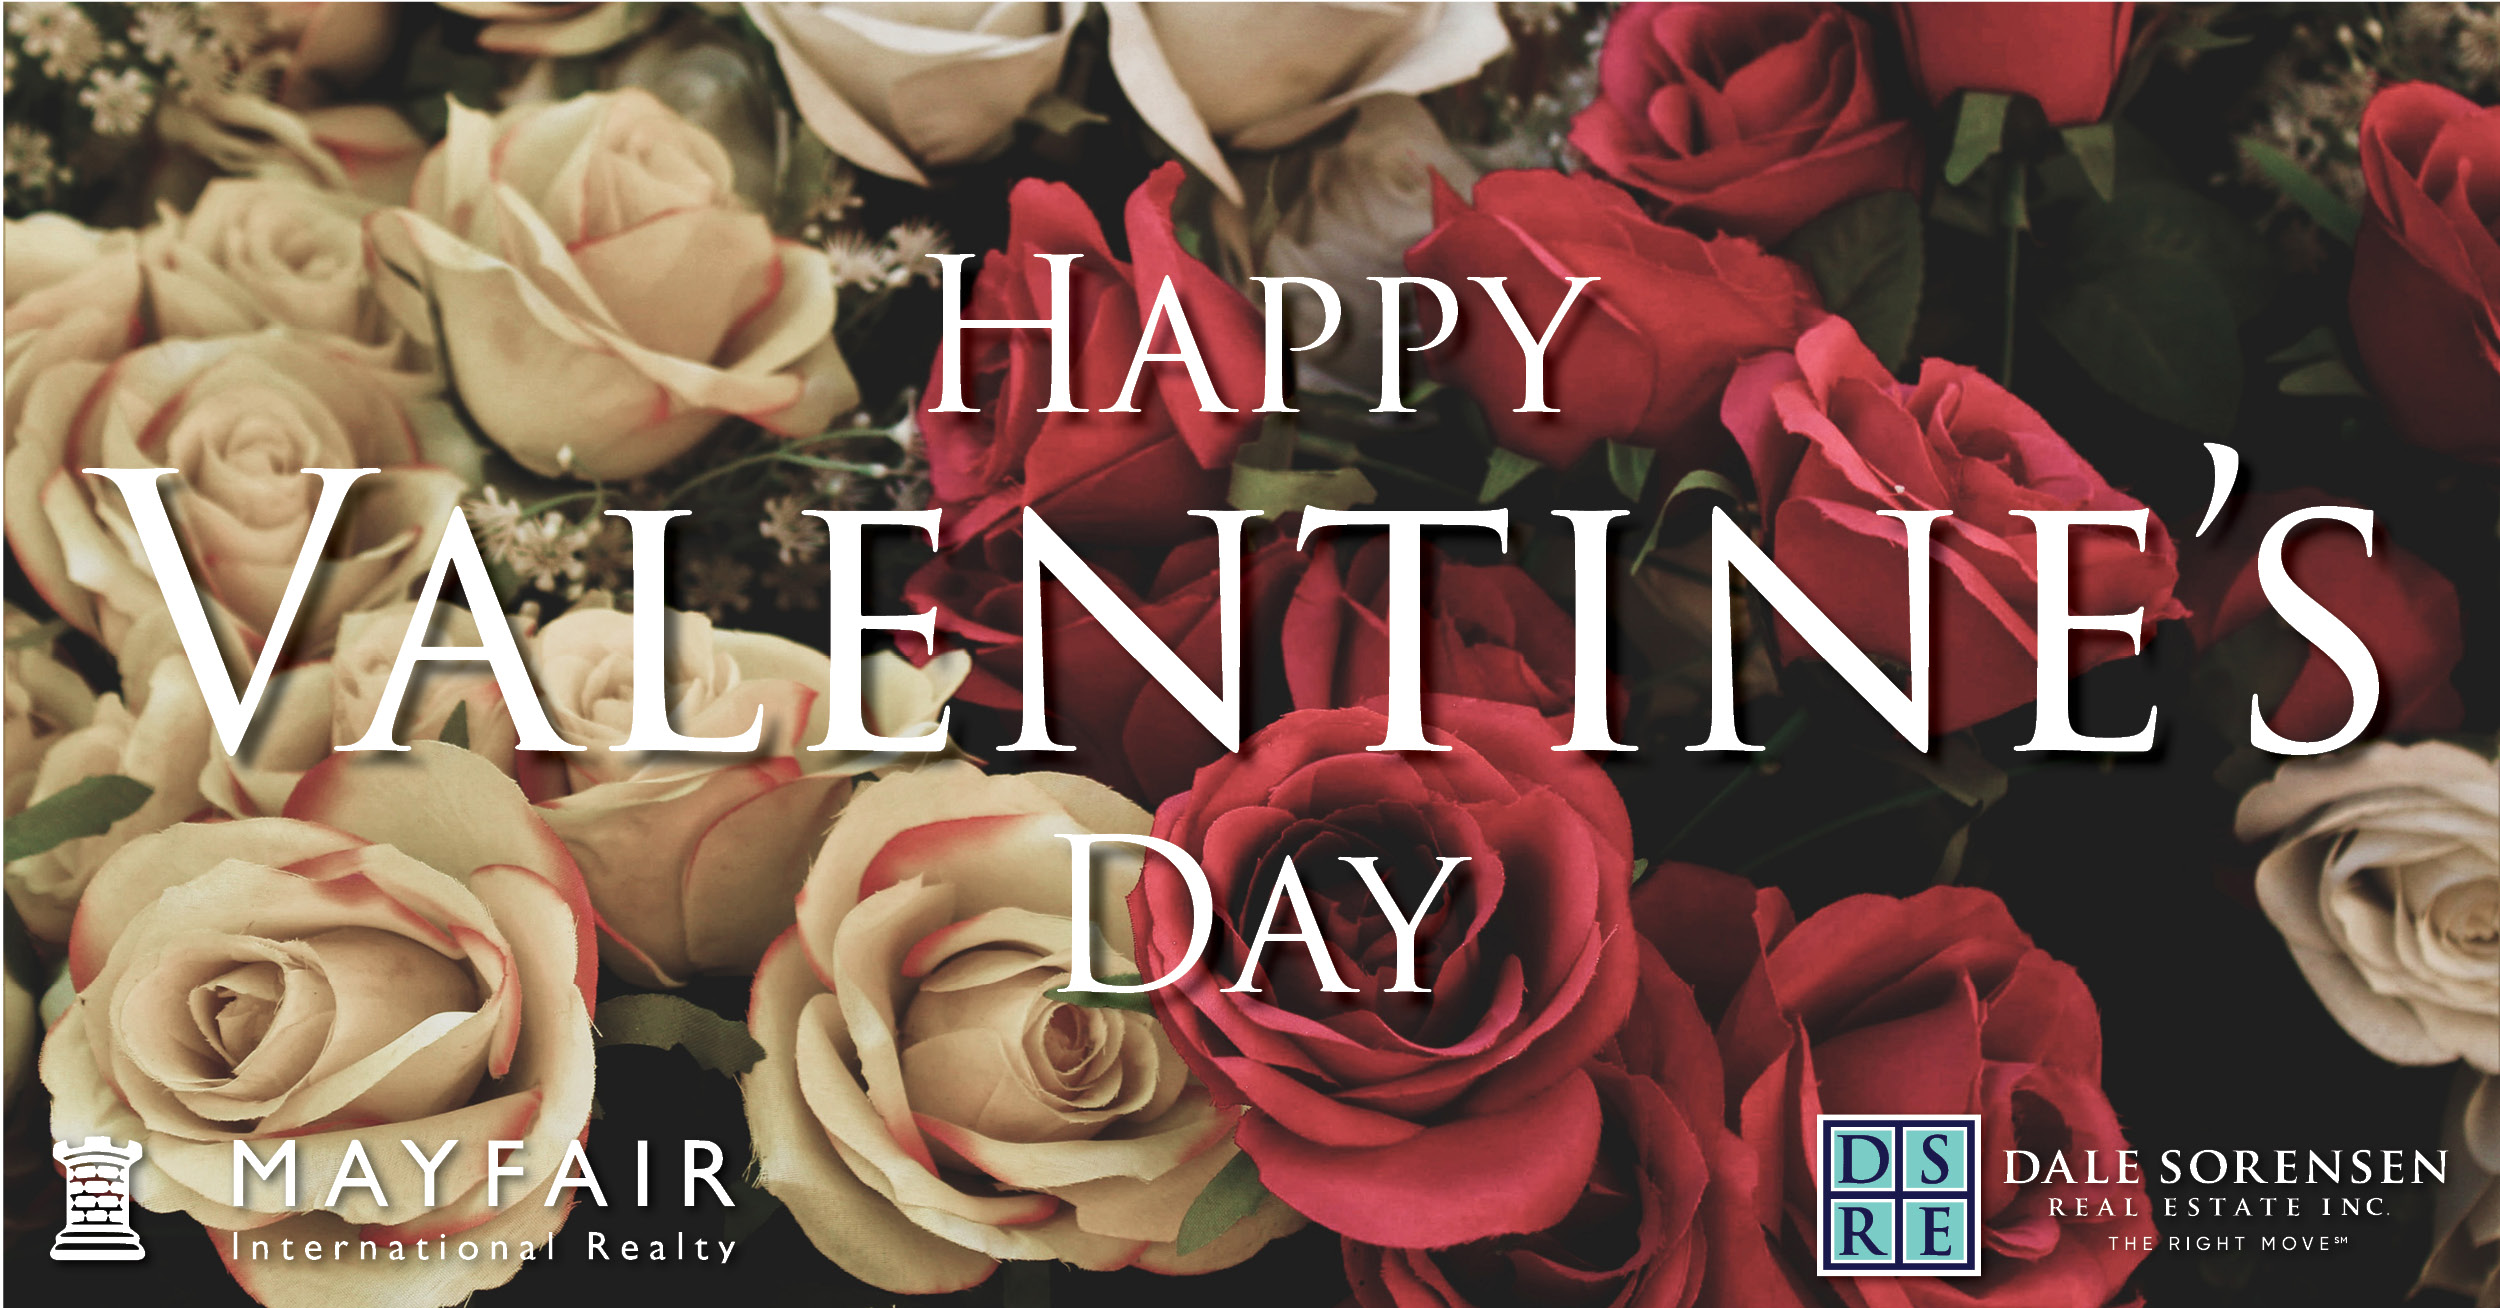 Happy Valentines Day, Mayfair International Realty. DSRE Dale Sorensen Real Estate Inc. THE RIGHT MOVE